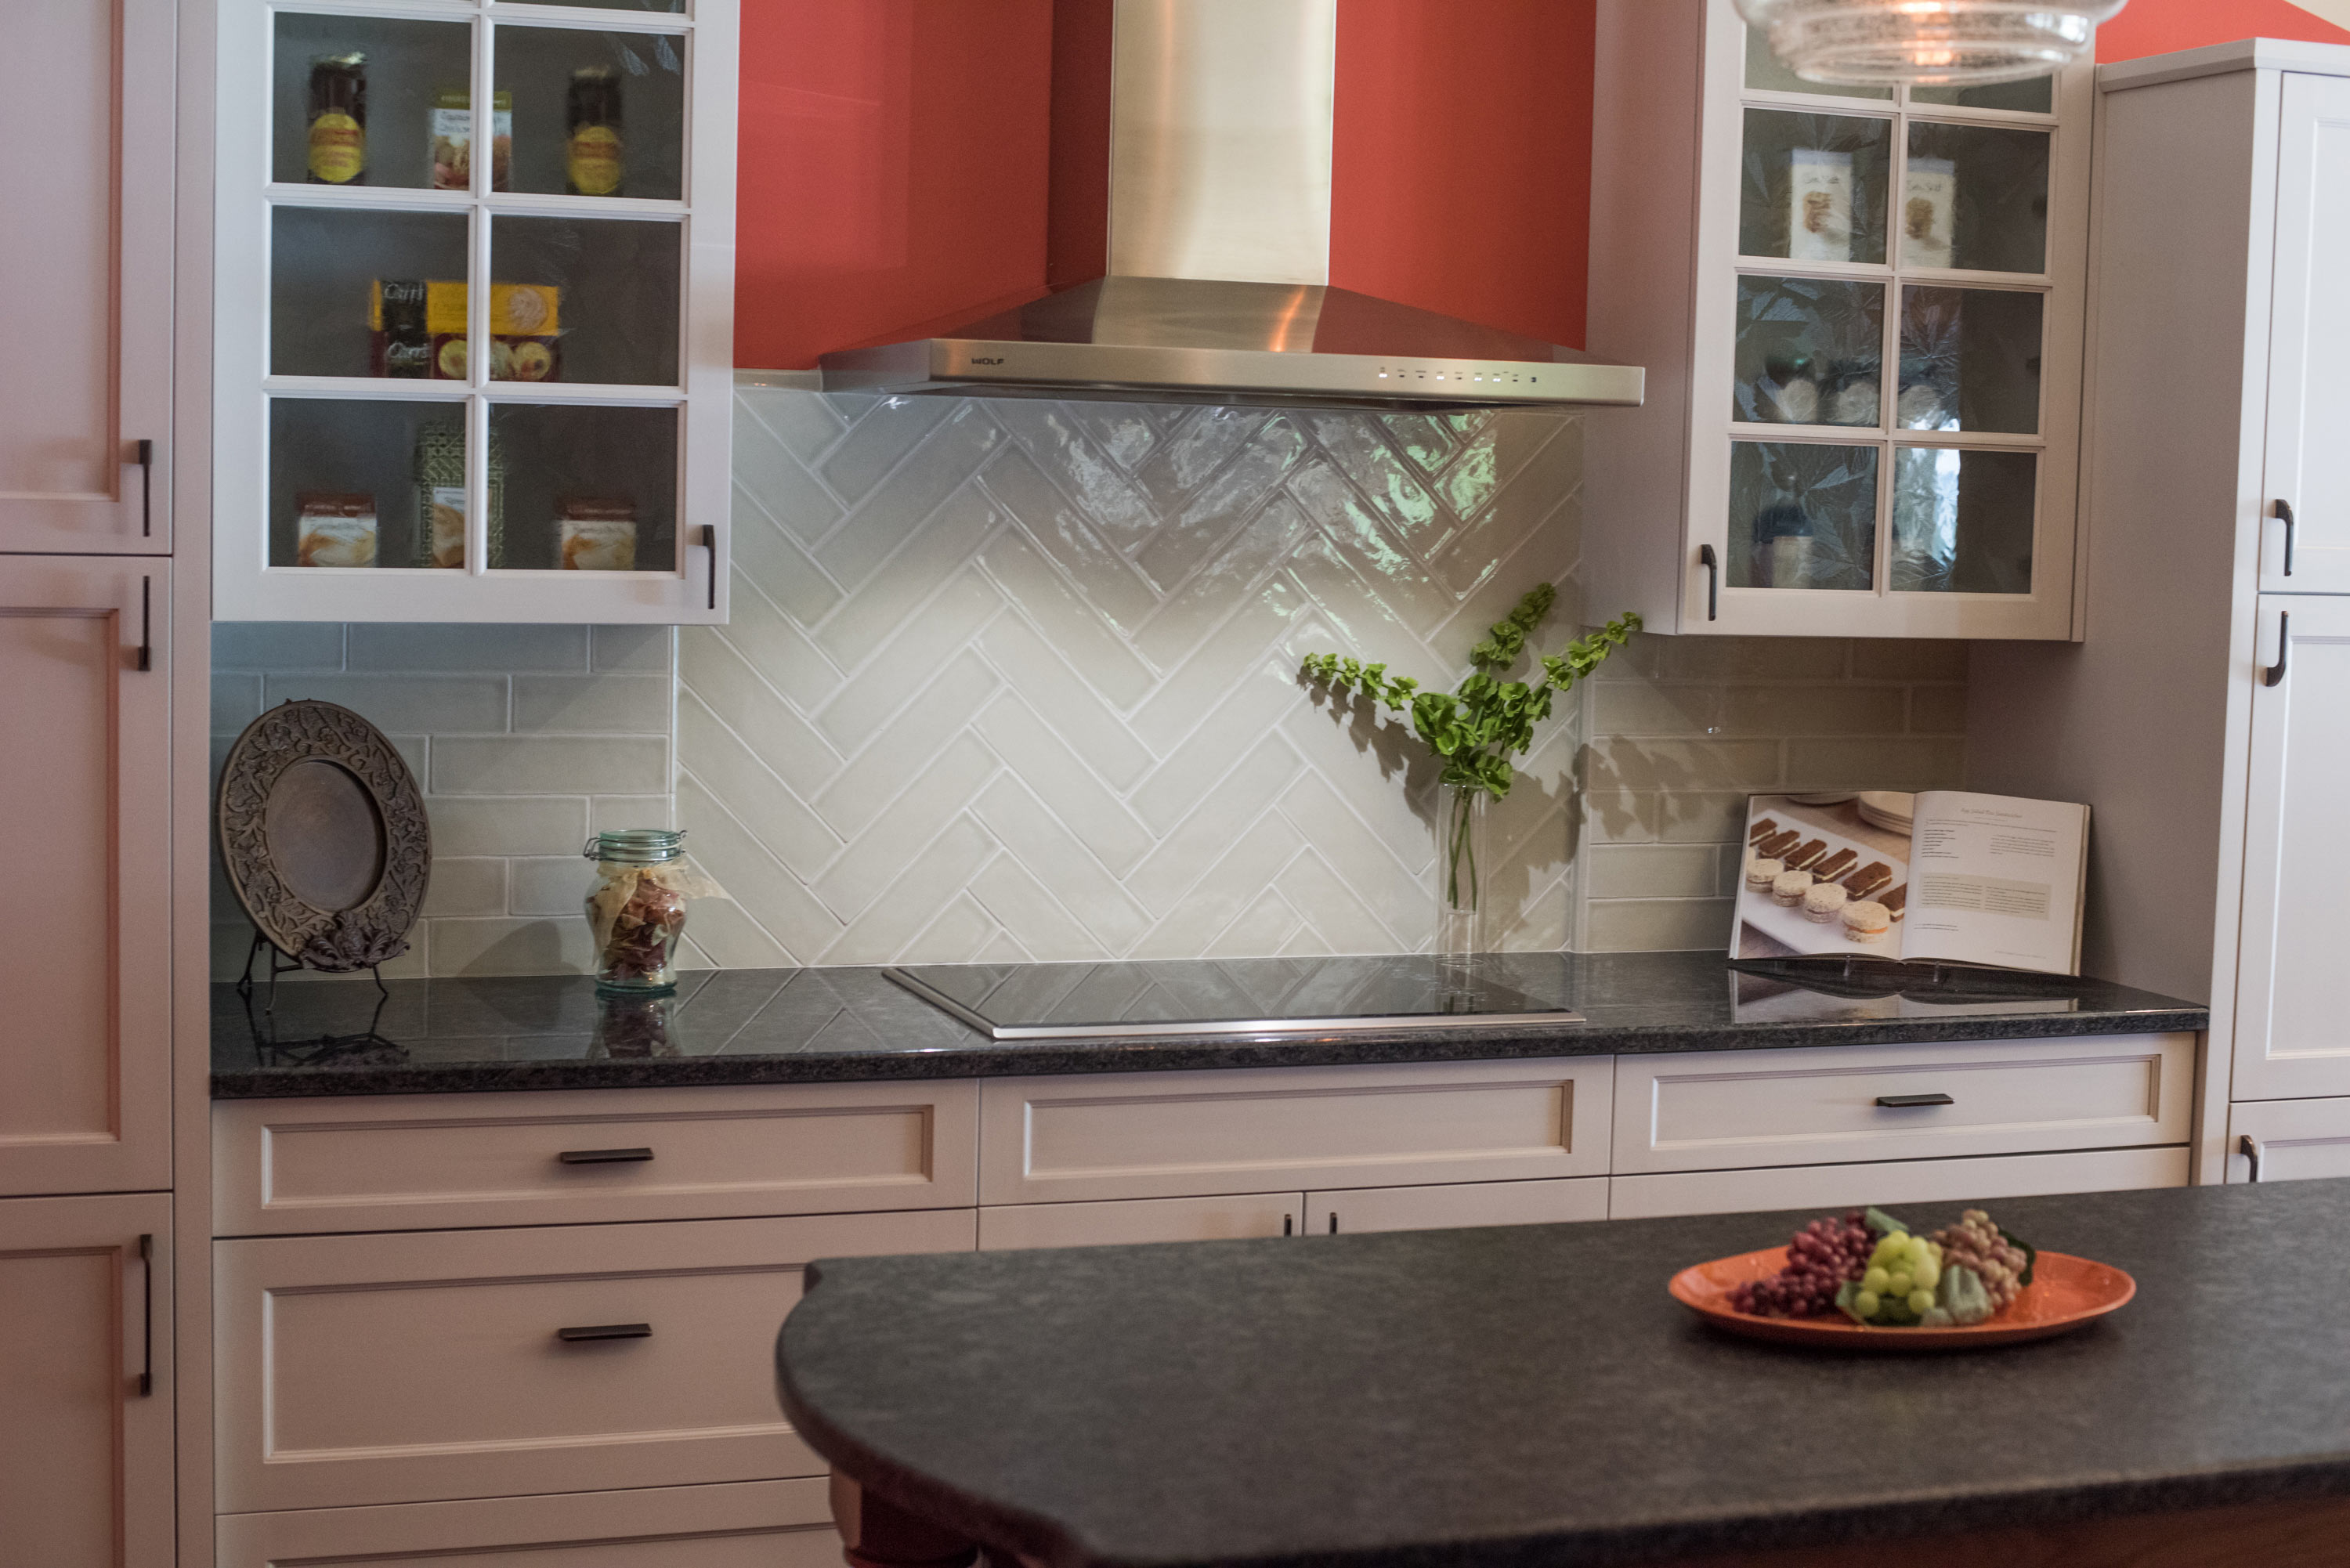 Kitchen Design Center Custom Kitchens Nh Custom Baths Nh Krb Kitchen And Bath Design